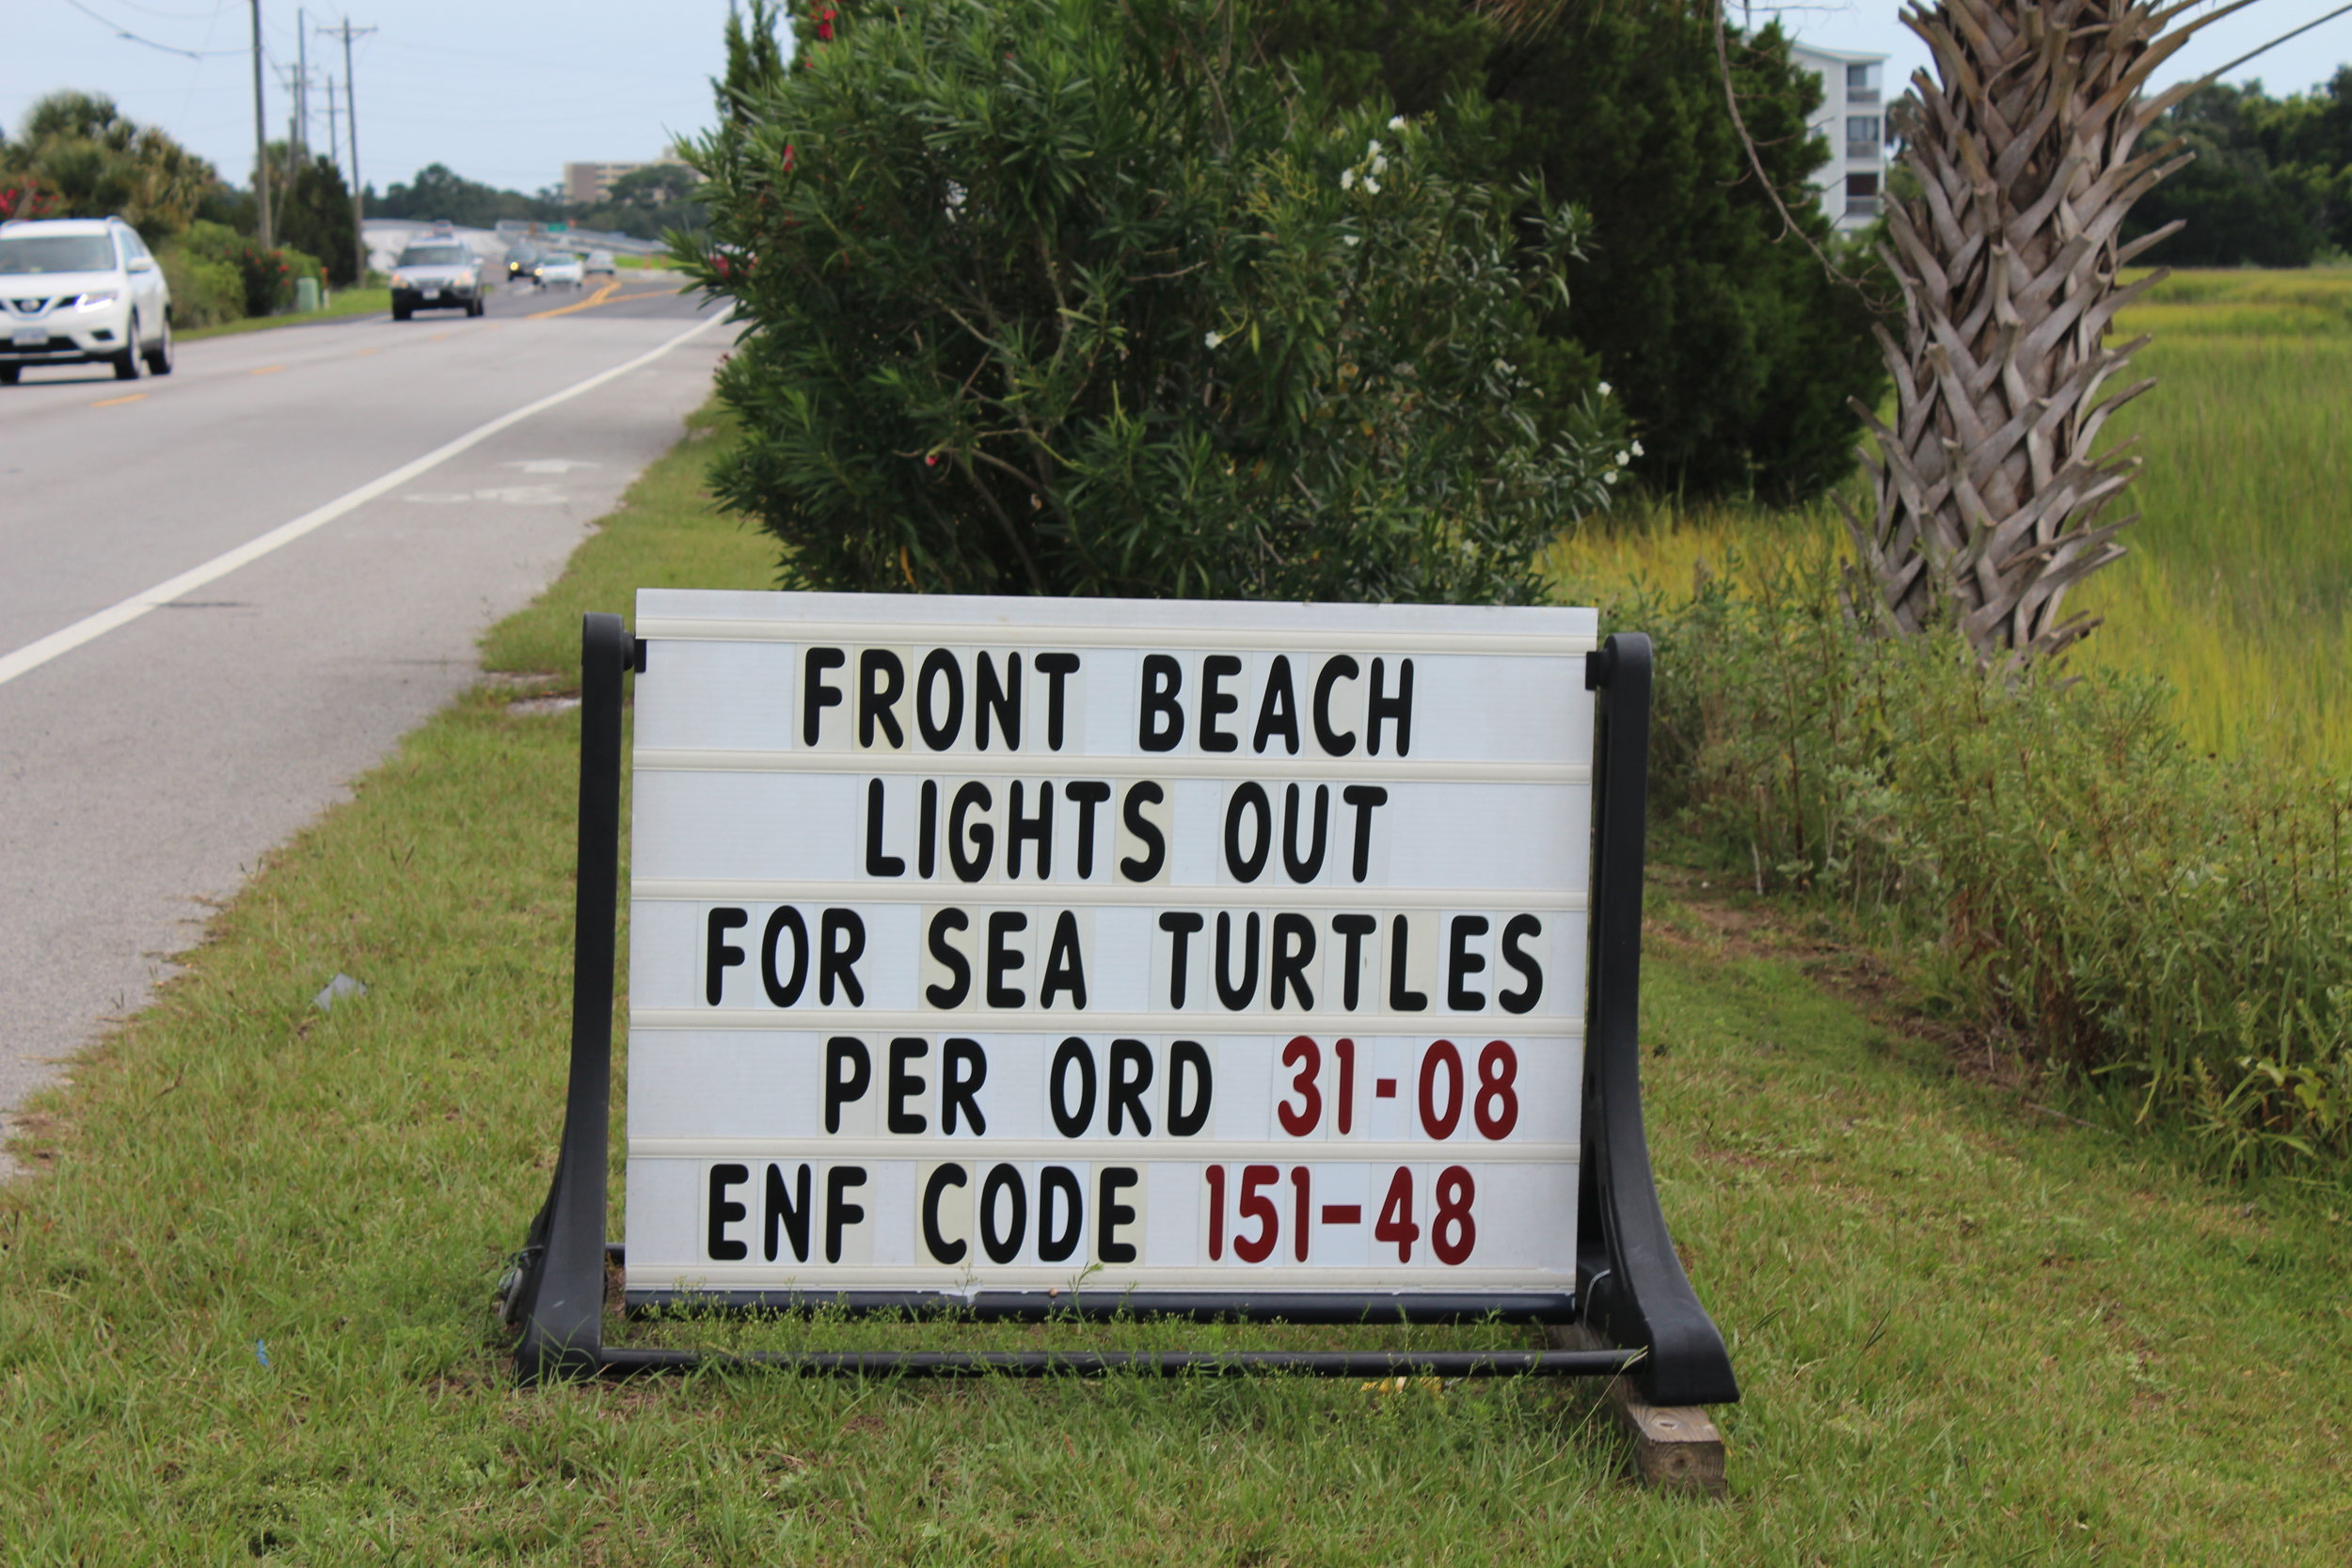 A reminder to keep lights out at night for sea turtles at the entrance to Folly Beach in 2015 (Photo: E. Weeks/SCDNR)